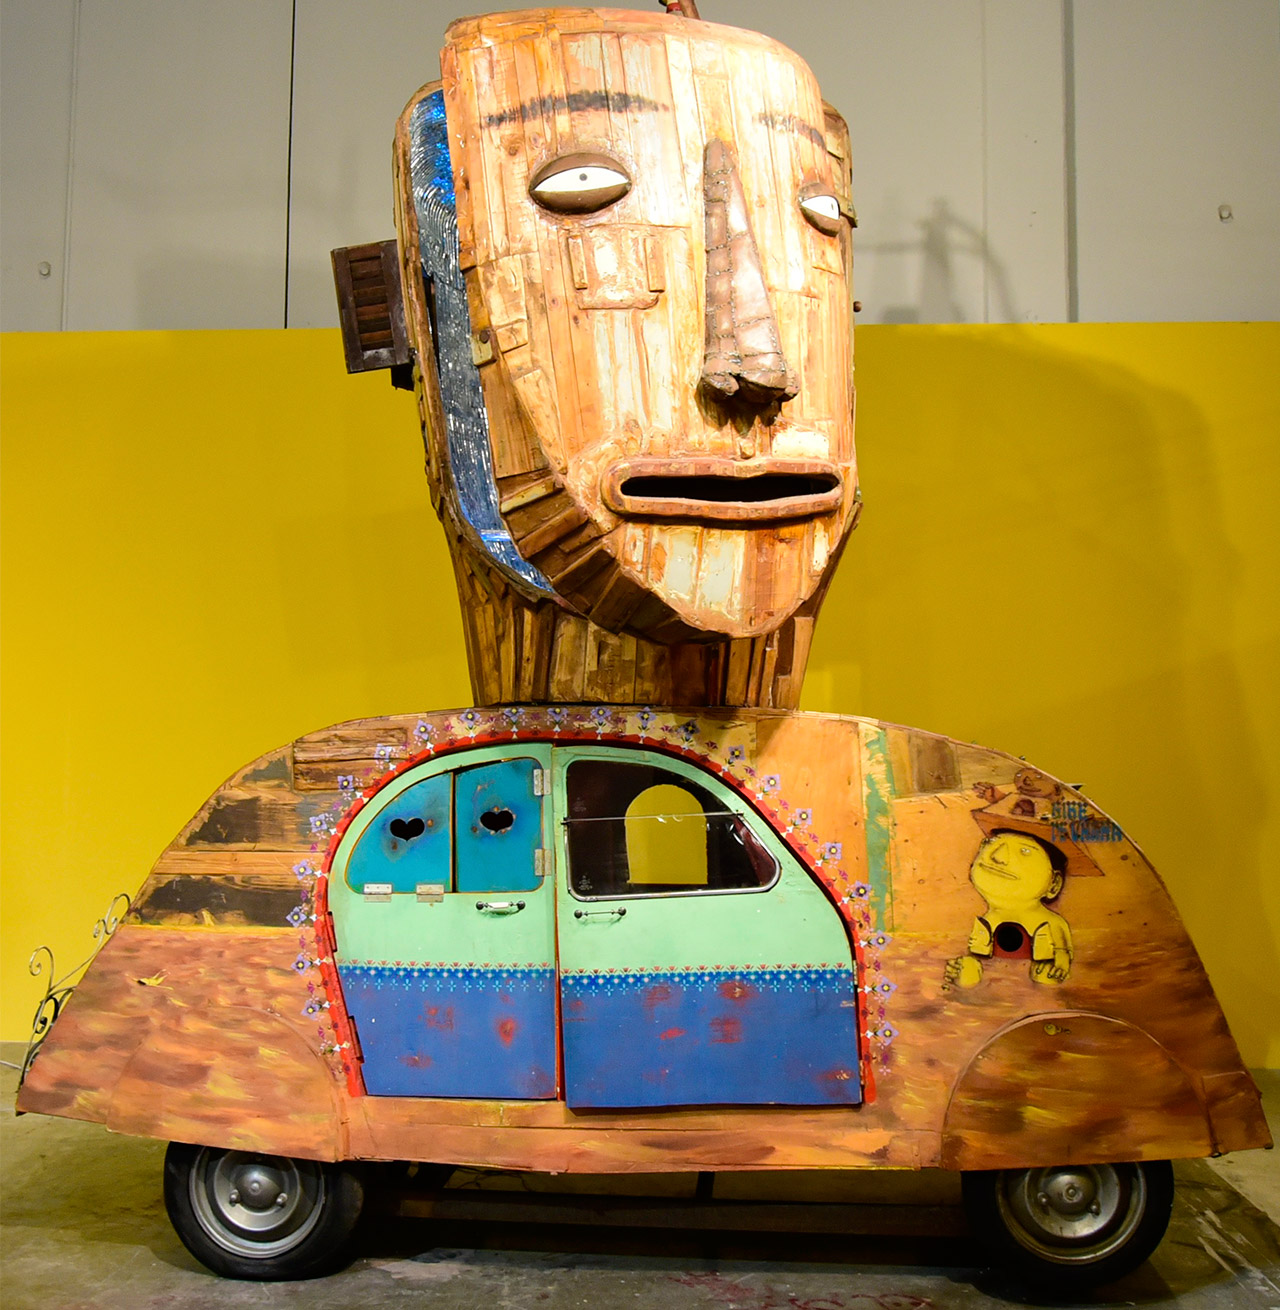 A large work by Os Gemeos in 'Everything you are I am not' at Mana Wynwood